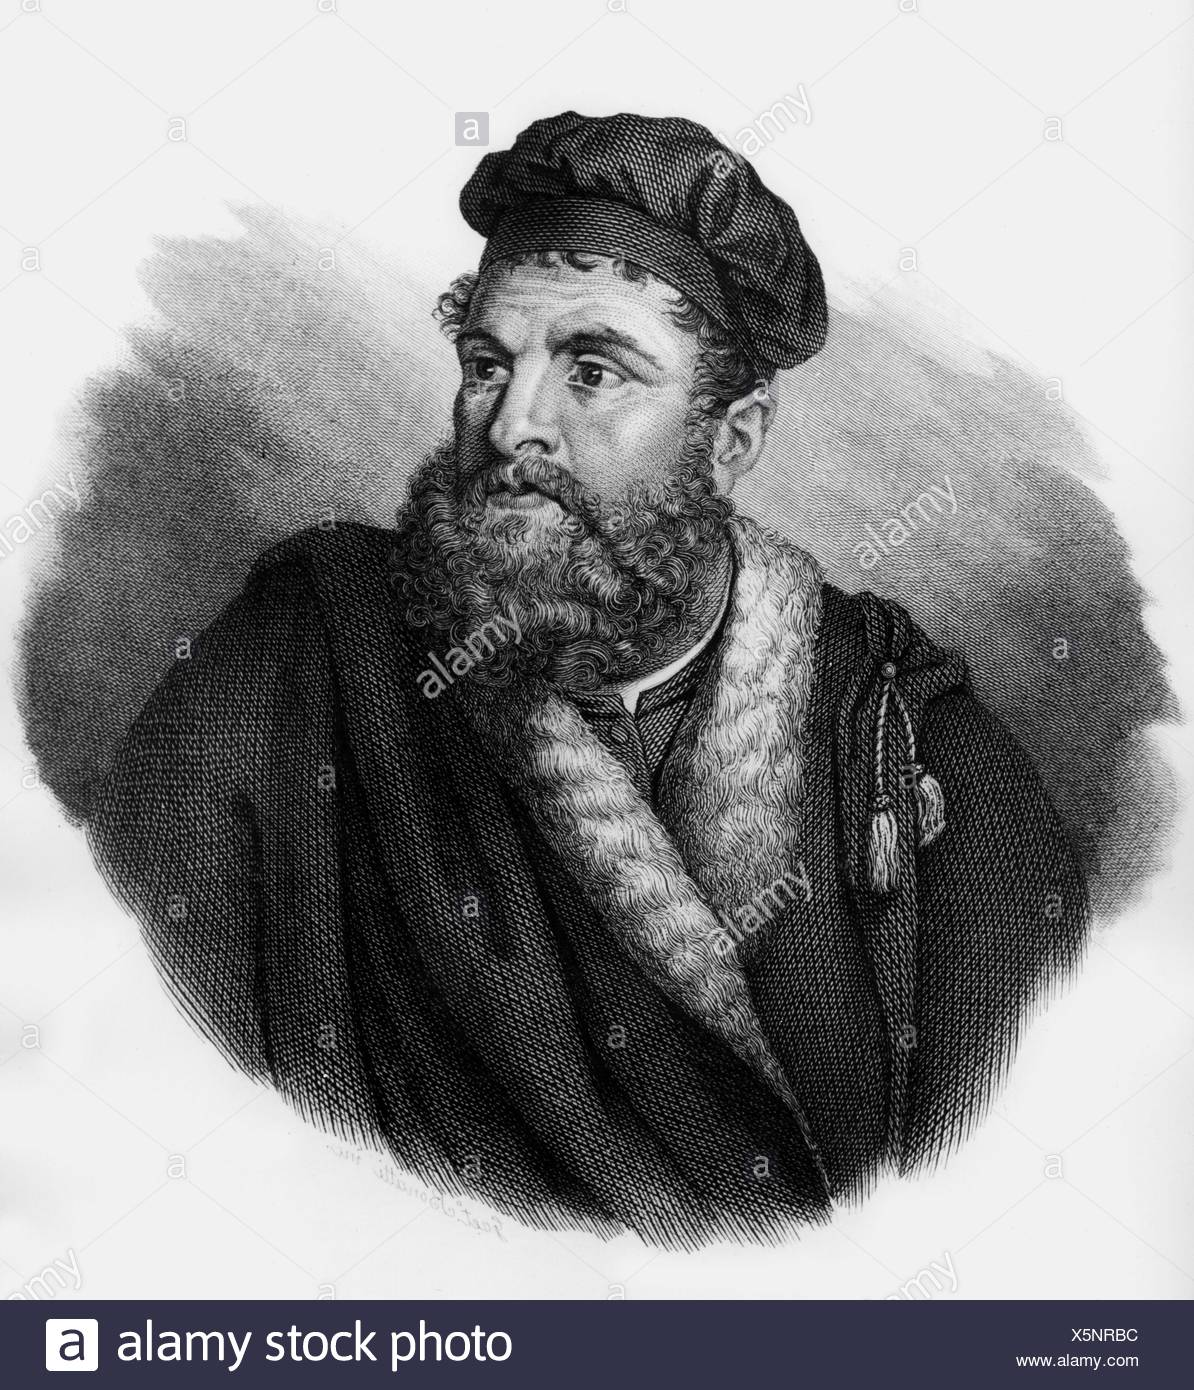 Polo, Marco, 1254 - 8.1.1324, Venetian merchant and traveller, portrait, wood engraving, 19th century, Additional-Rights-Clearances-NA - Stock Image